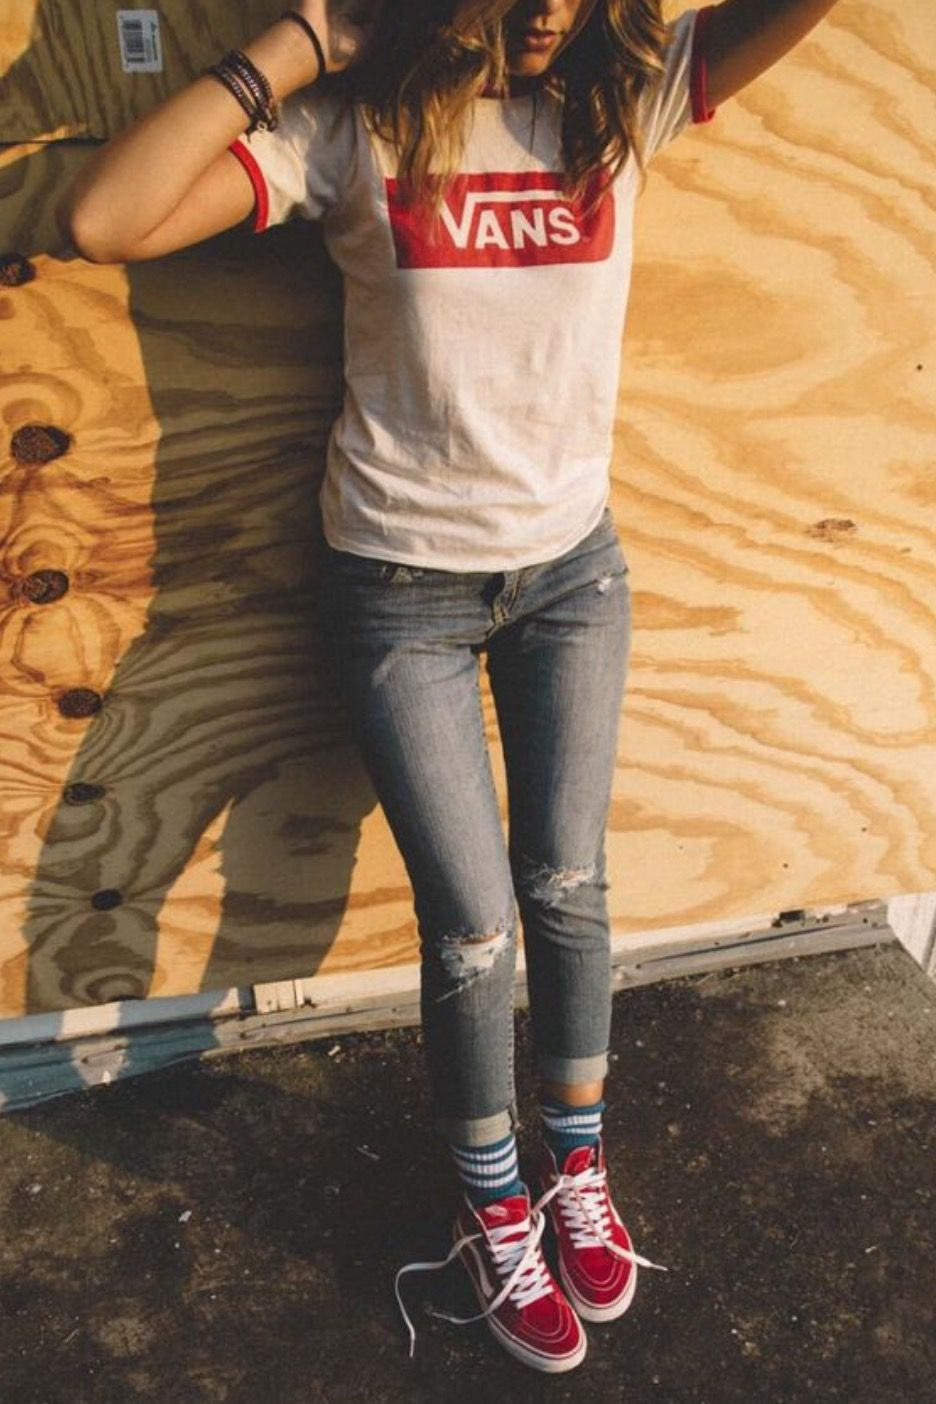 imagepenny lane on babe  red vans outfit fashion